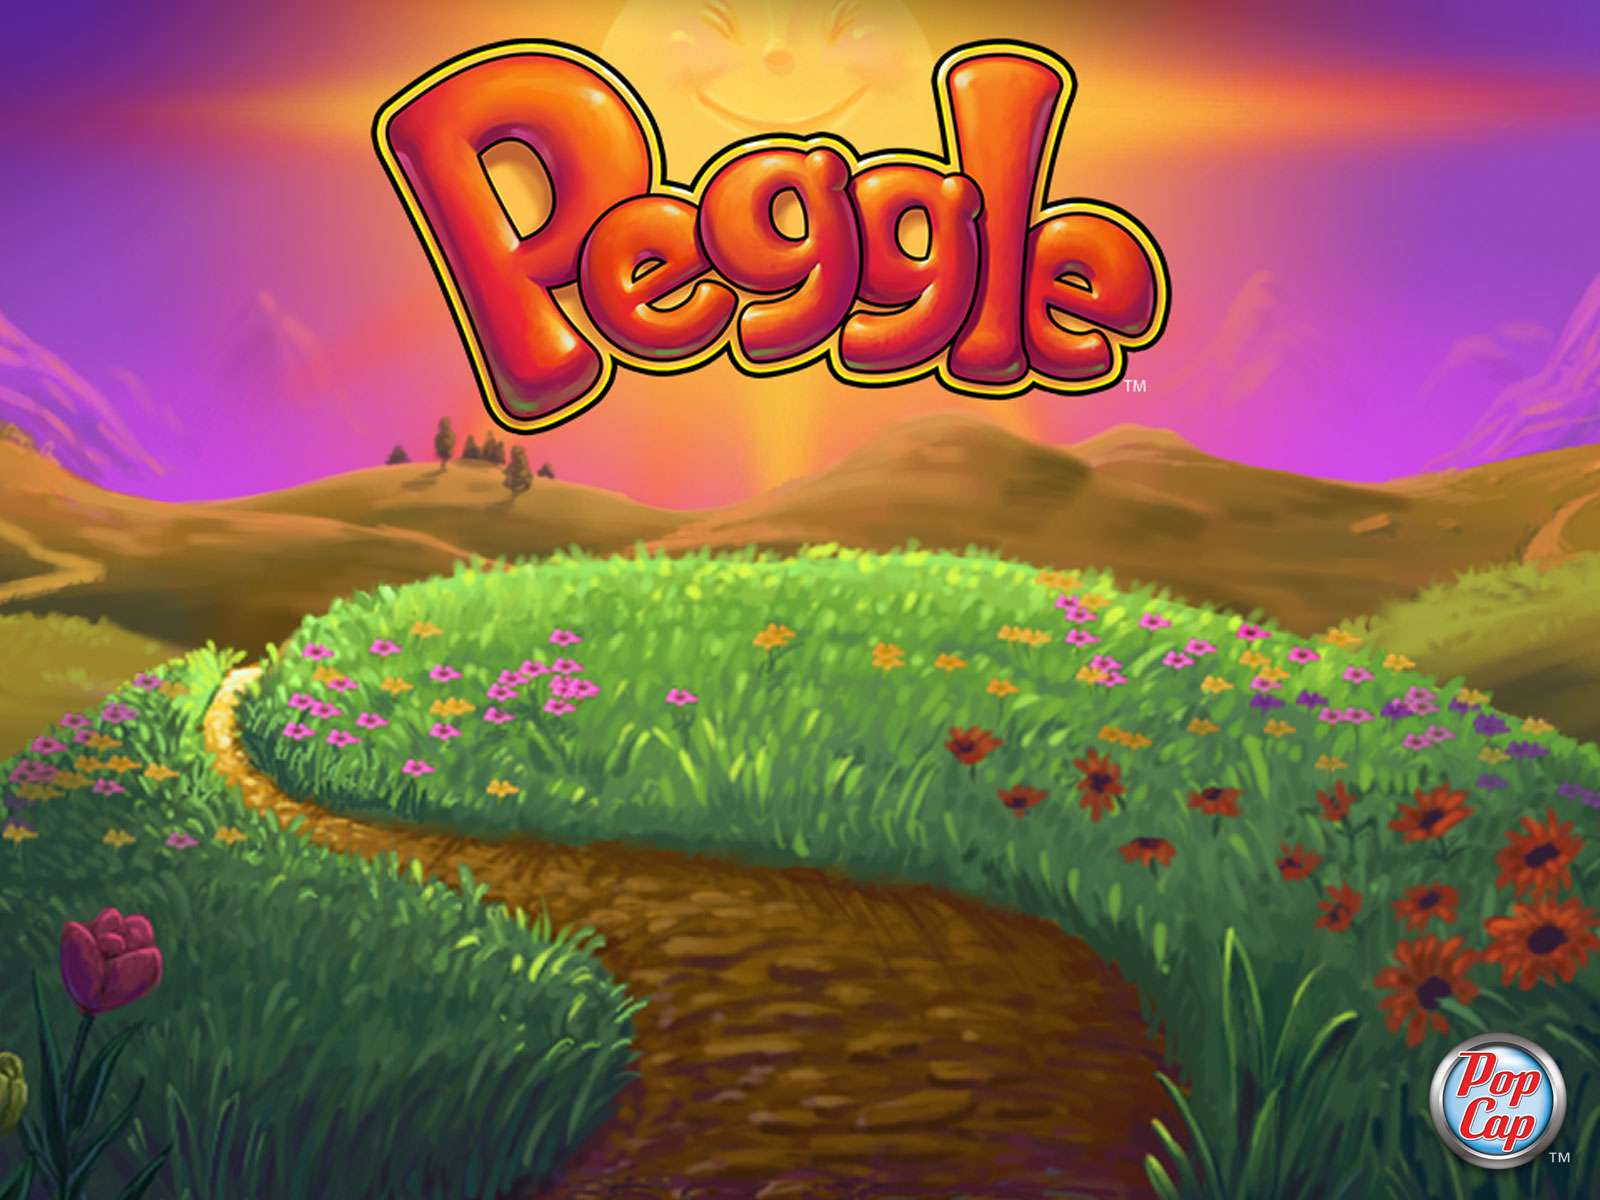 Peggle game by Popcap Games